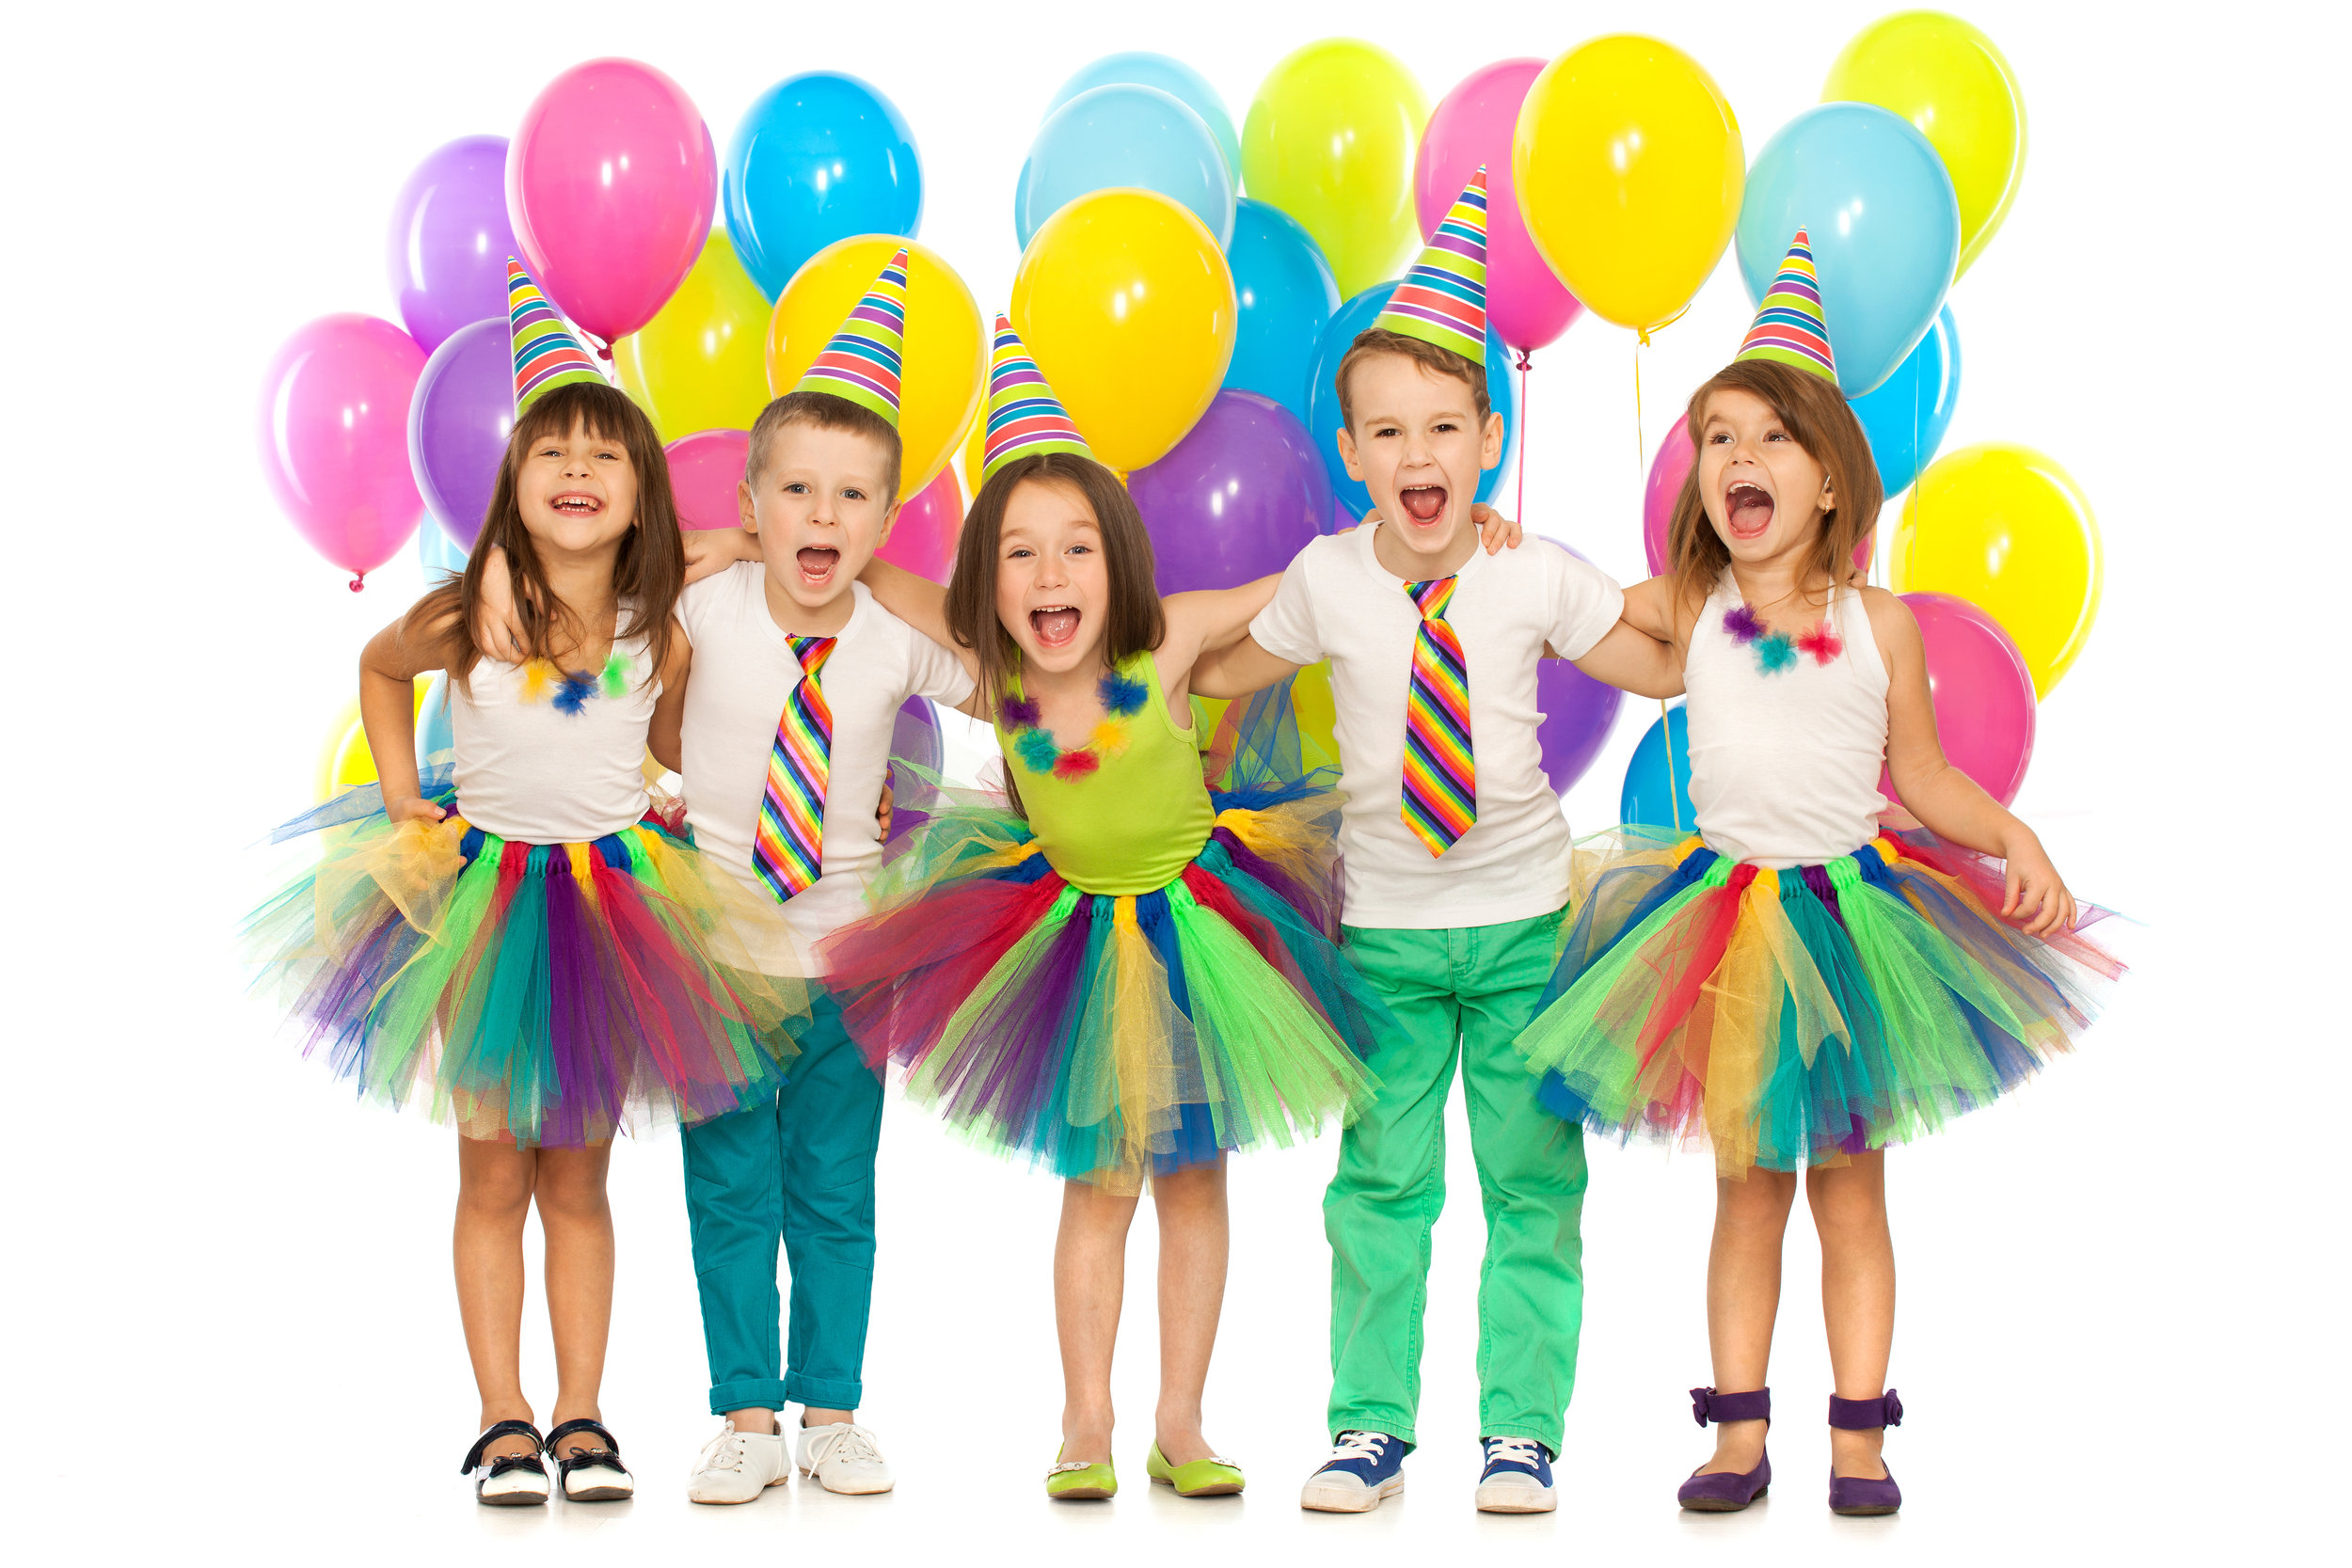 BIRTHDAY PARTIES - Parties are available for ages 4 and older! Kids will enjoy one hour of gym time running, jumping, flipping, playing organized games, and free time with your party host and 30 Min in the lobby for refreshments and cakes. Choose from Open Play or Structured Parties!